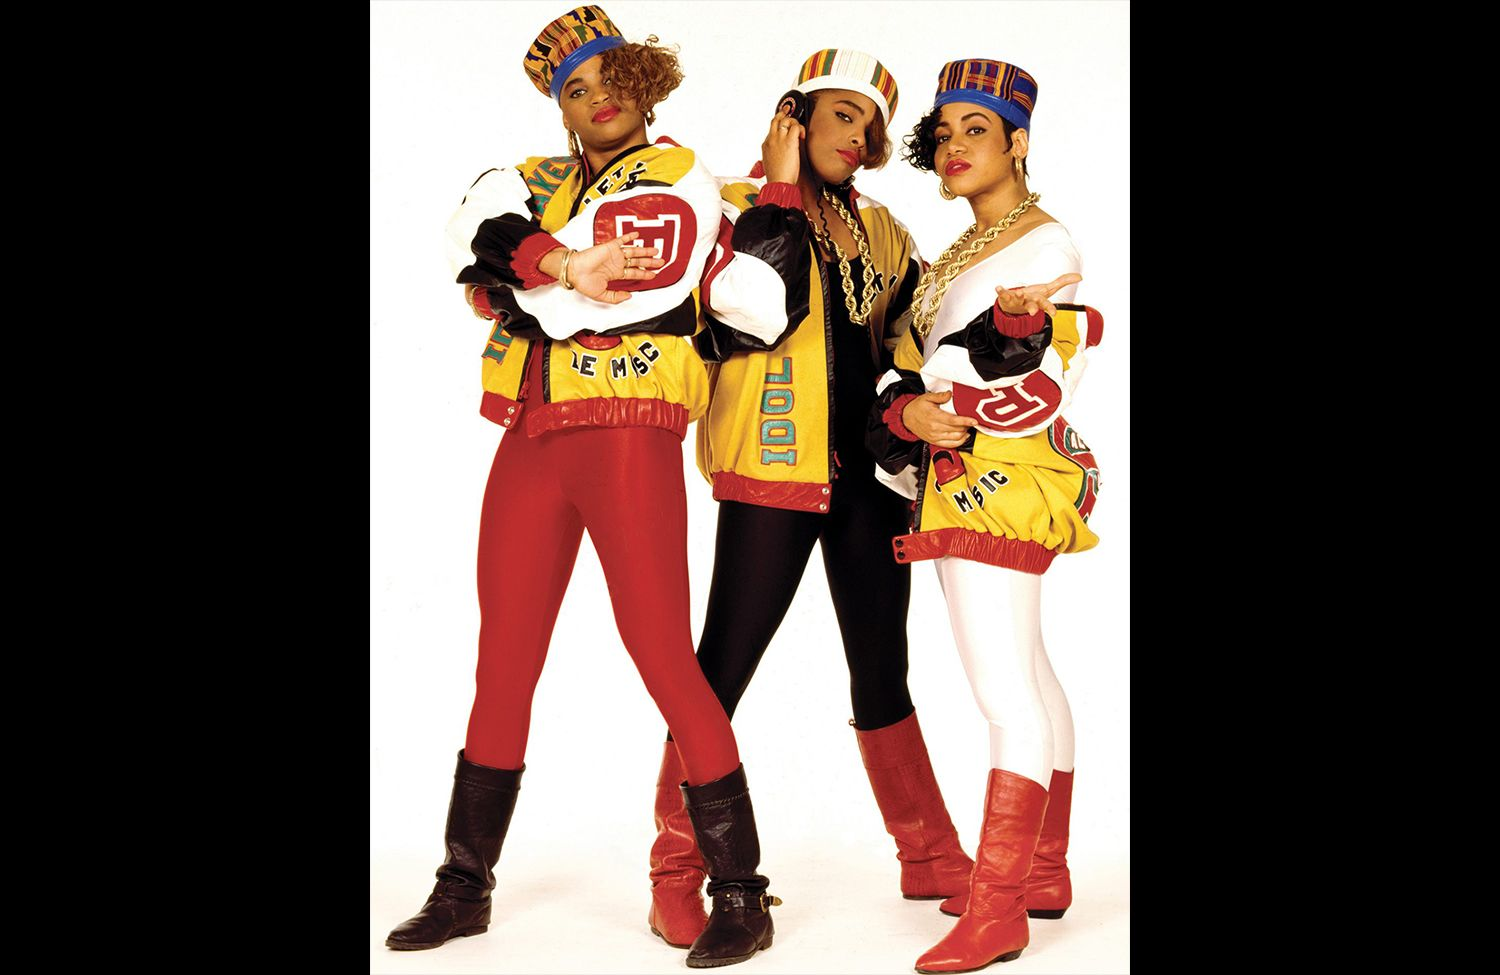 6. Salt-N-Pepa, from the cover shoot for Shake Your Thang (1987). Photo by Janette Beckman.